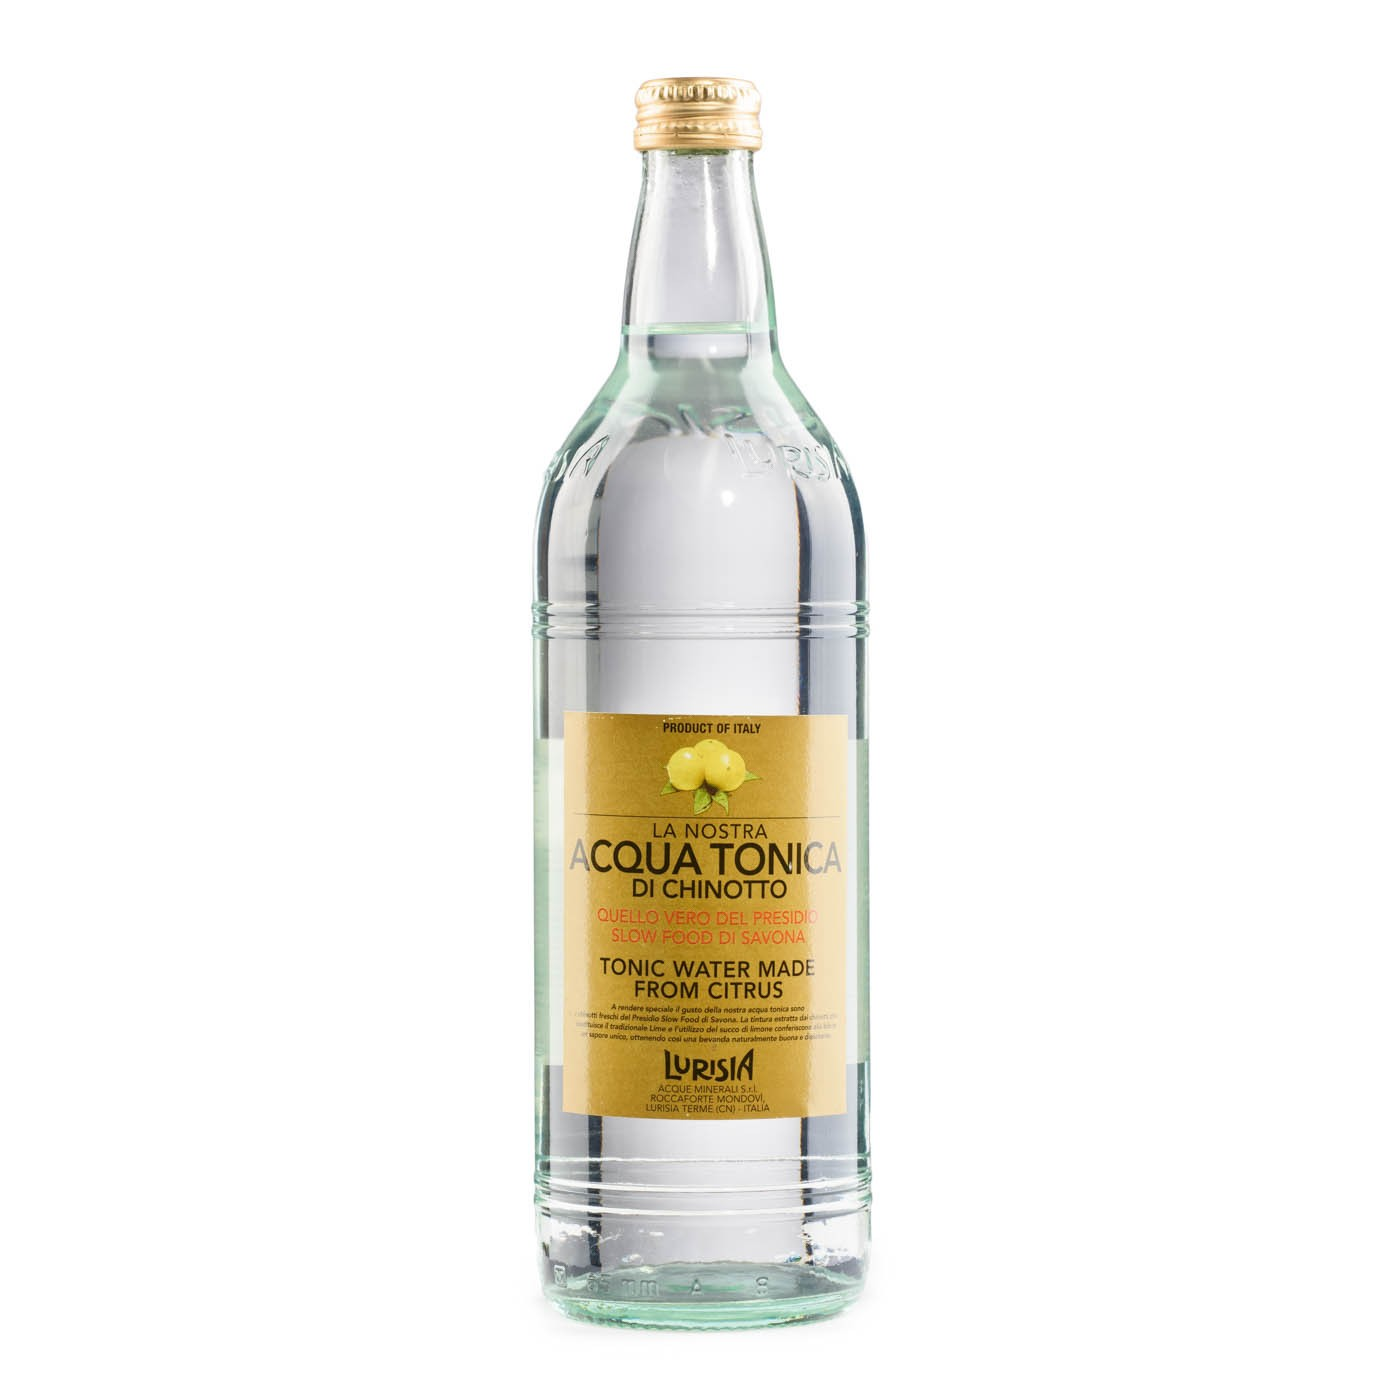 Chinotto Tonic Water 25.4 oz